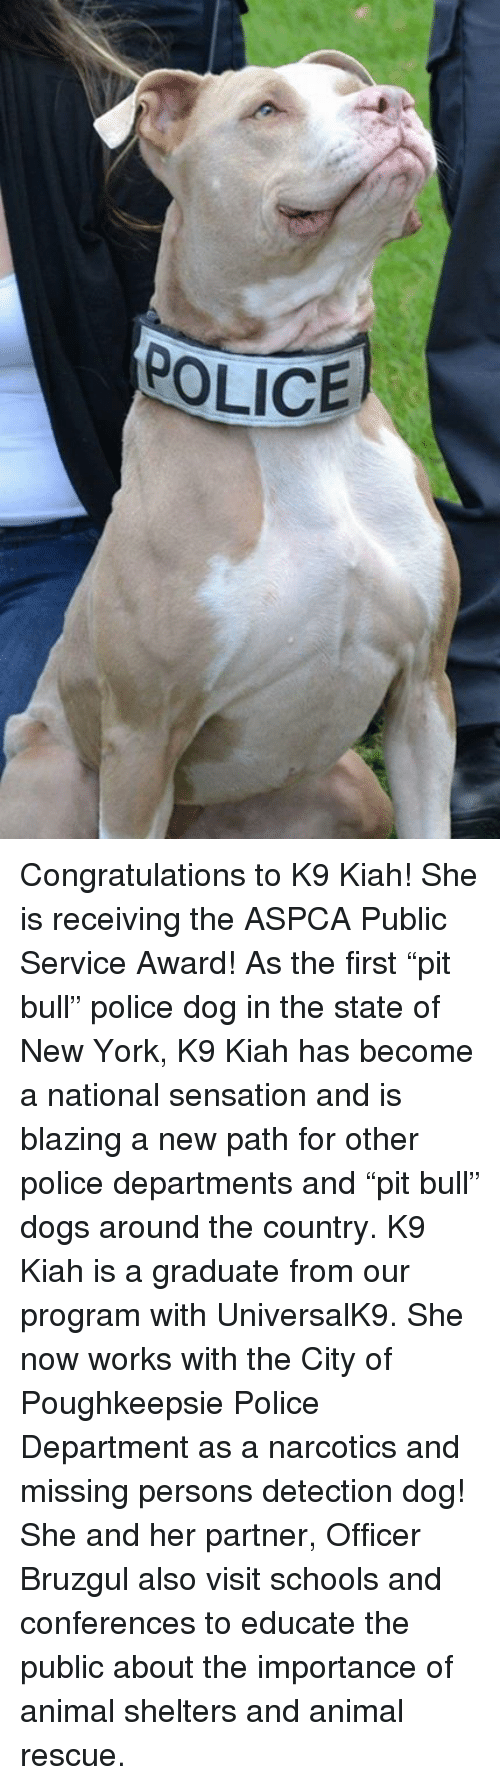 """Aspca: POLICE Congratulations to K9 Kiah! She is receiving the ASPCA Public Service Award! As the first """"pit bull"""" police dog in the state of New York, K9 Kiah has become a national sensation and is blazing a new path for other police departments and """"pit bull"""" dogs around the country.   K9 Kiah is a graduate from our program with UniversalK9. She now works with the City of Poughkeepsie Police Department as a narcotics and missing persons detection dog! She and her partner, Officer Bruzgul also visit schools and conferences to educate the public about the importance of animal shelters and animal rescue."""